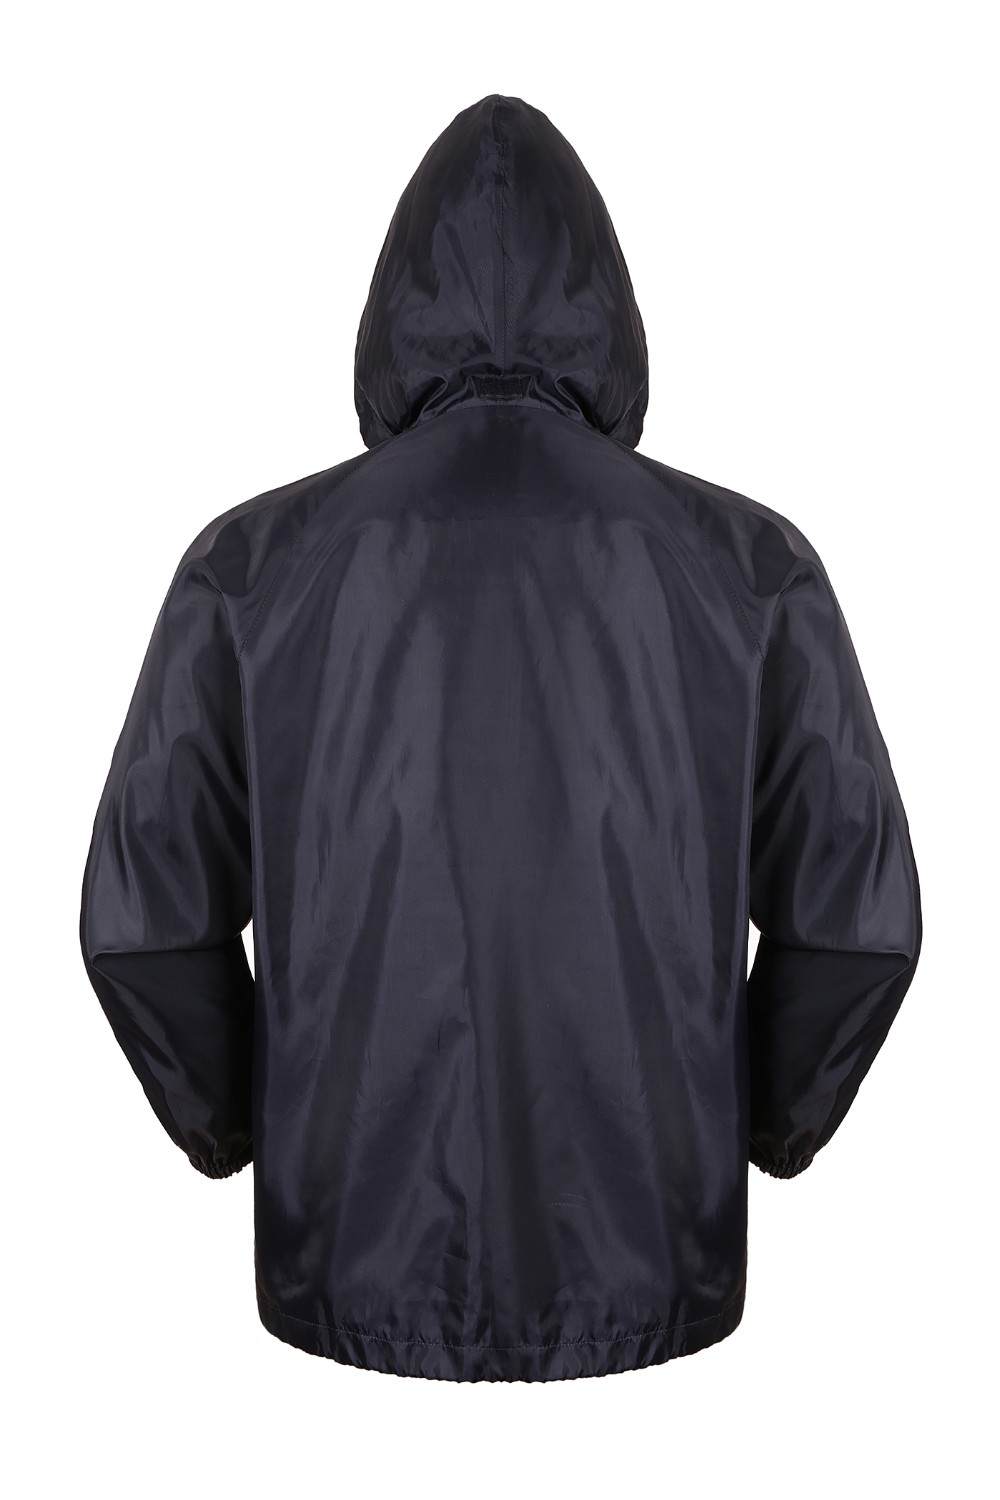 windbreaker parka,windbreaker for fence,garden windbreaker